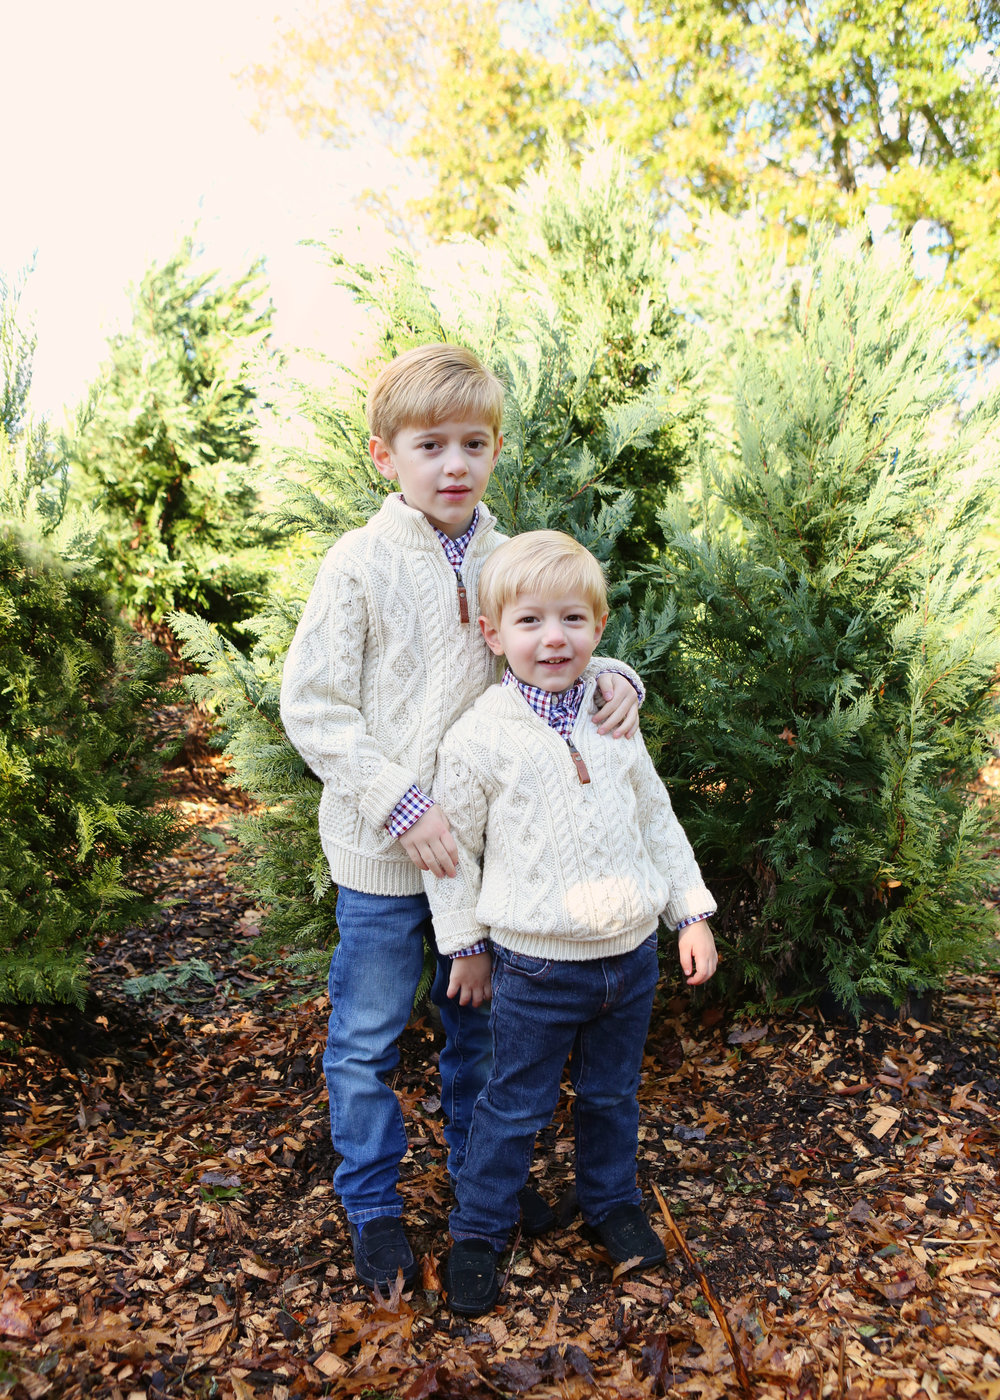 NJ and NYC based lifestyle photographer | Jennifer Lavelle Photography |  children and families, newborn, lifestyle, interiors, food and travel. Two brothers in a tree farm.